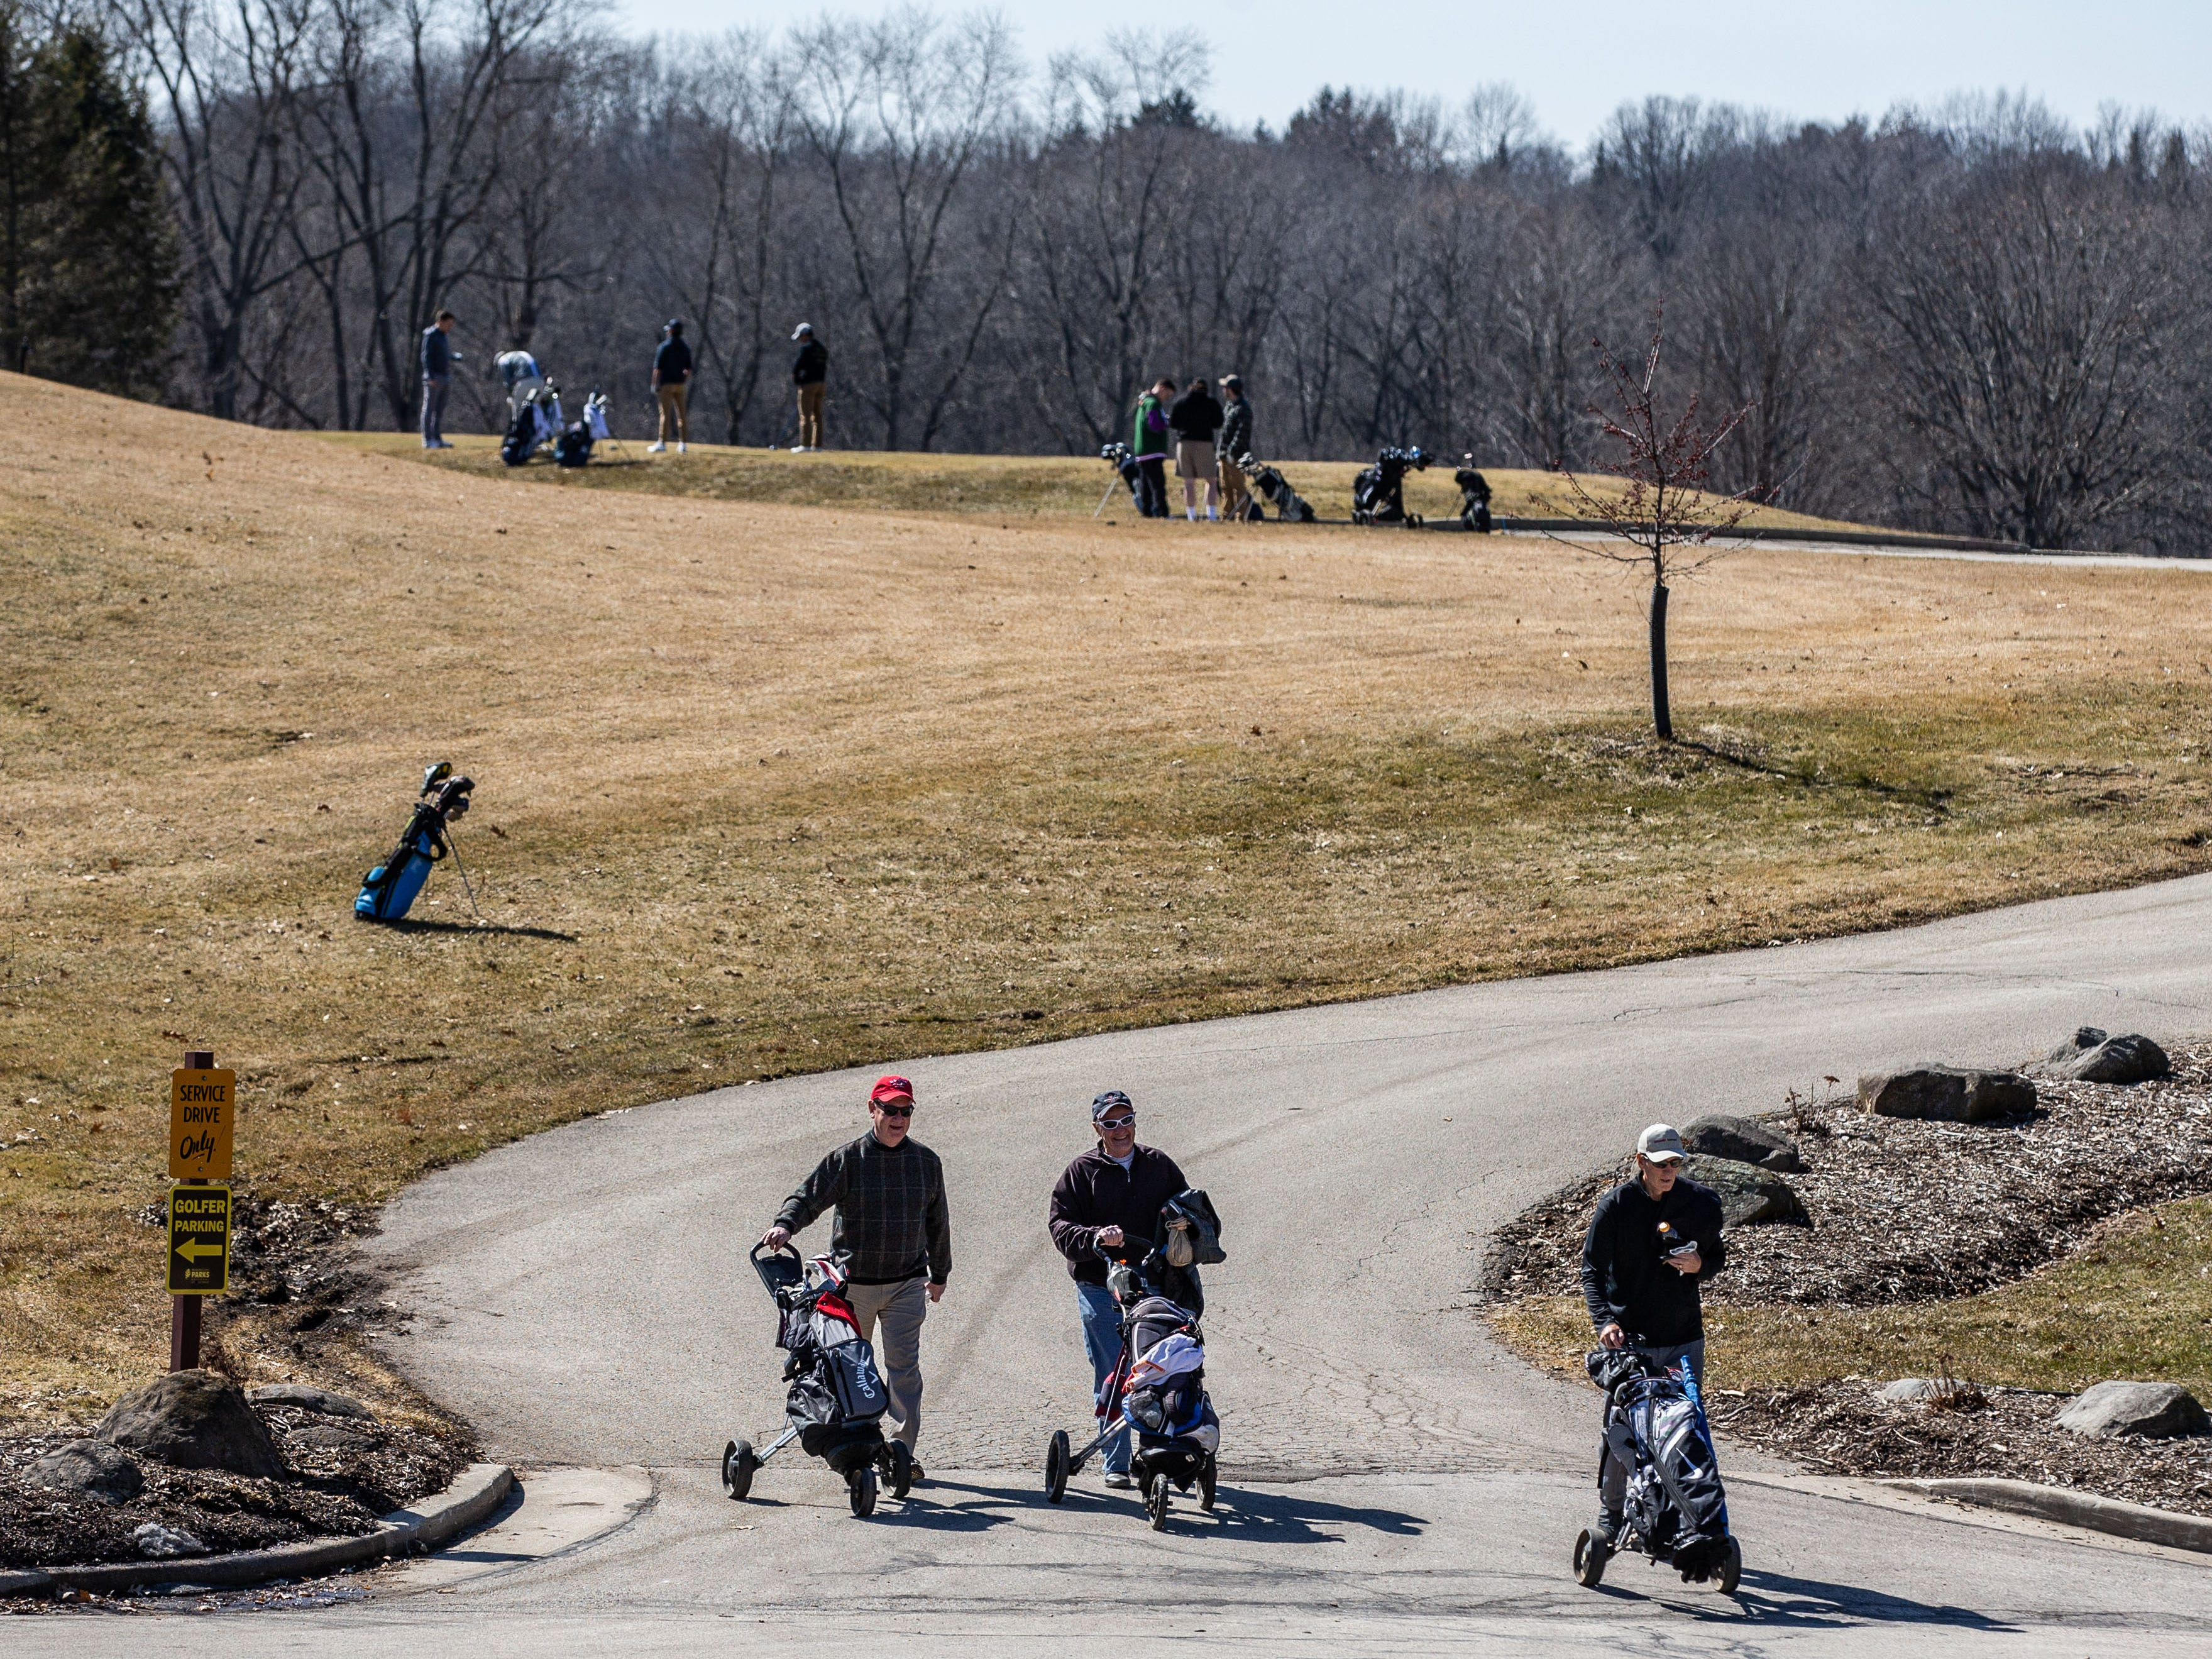 Whitnall Park Golf Course in Franklin bustles with activity on Saturday, March 23, 2019. Warm sunny weather lured many enthusiasts outside to enjoy the game.